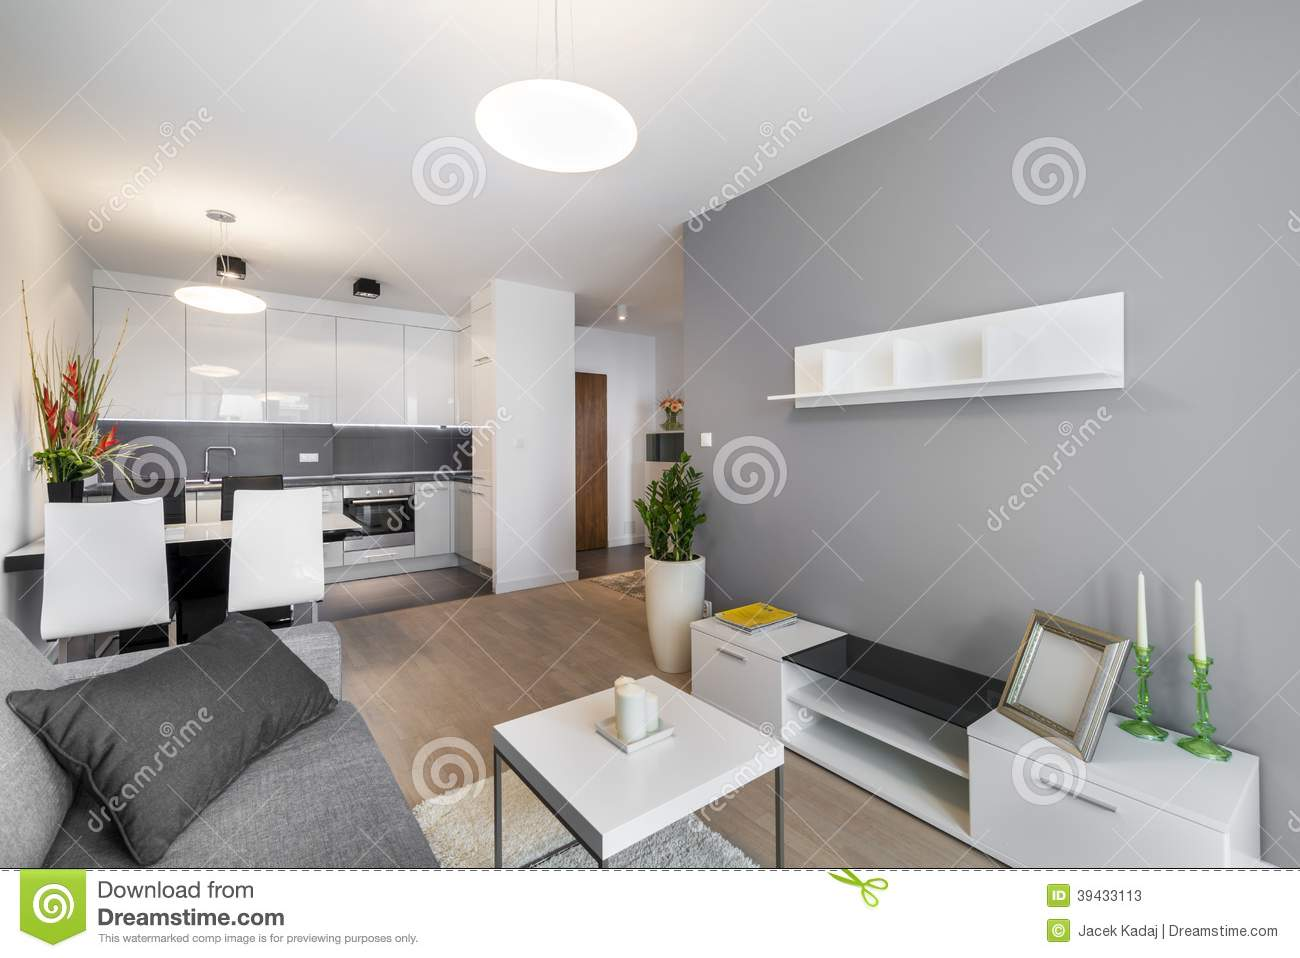 Modern interior design living room stock photo image 39433113 - Interior design living room modern ...